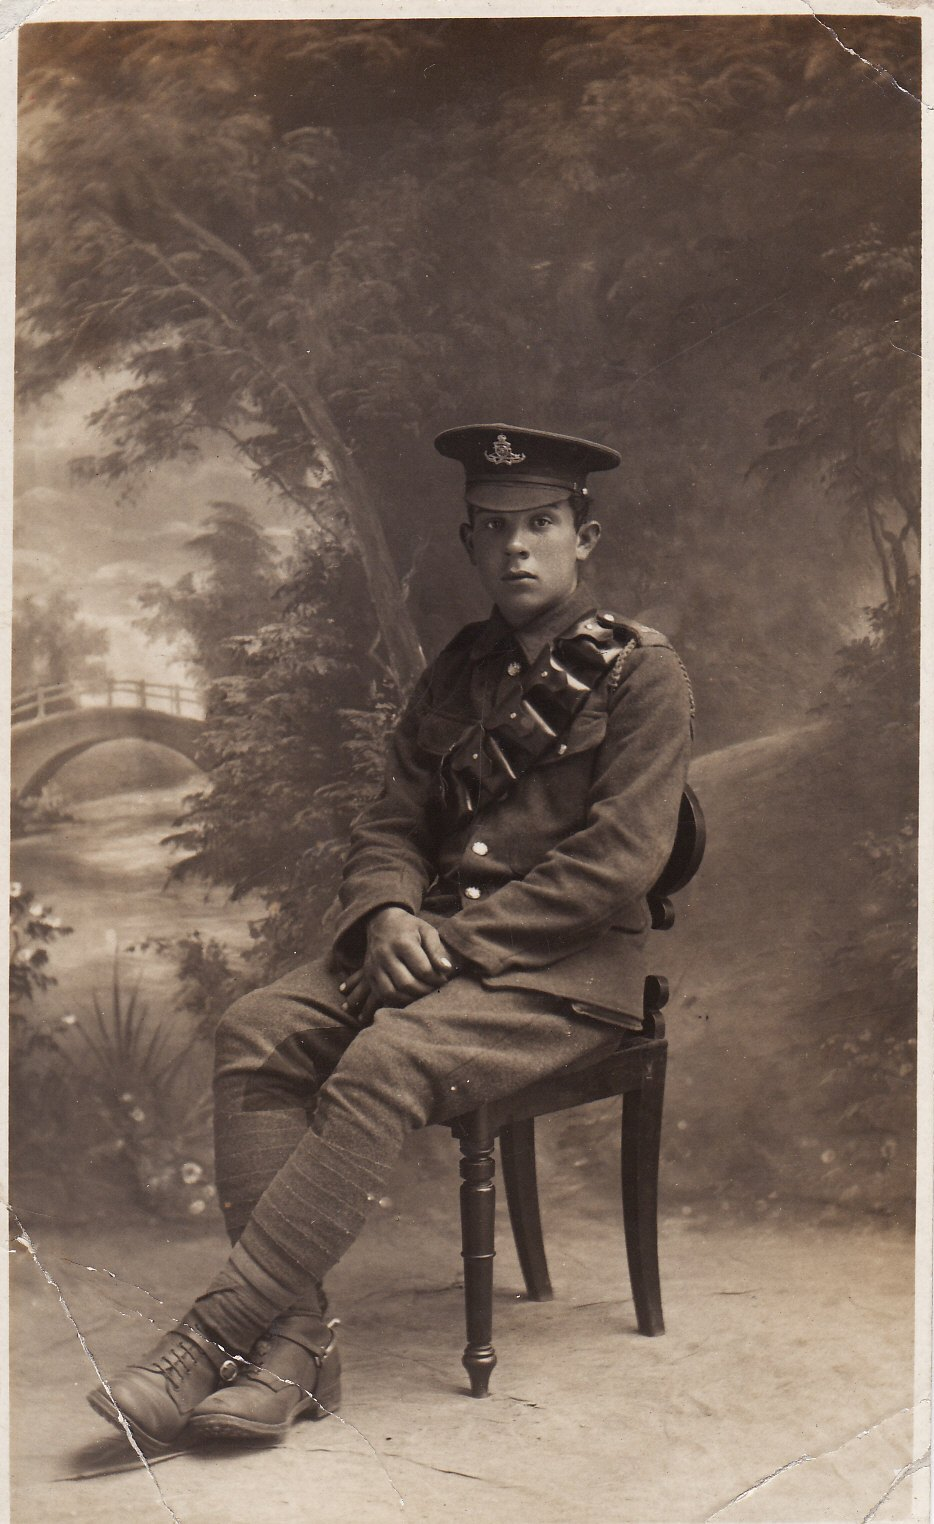 Louis Walter GOUGH, Royal Field Artillery, 1914